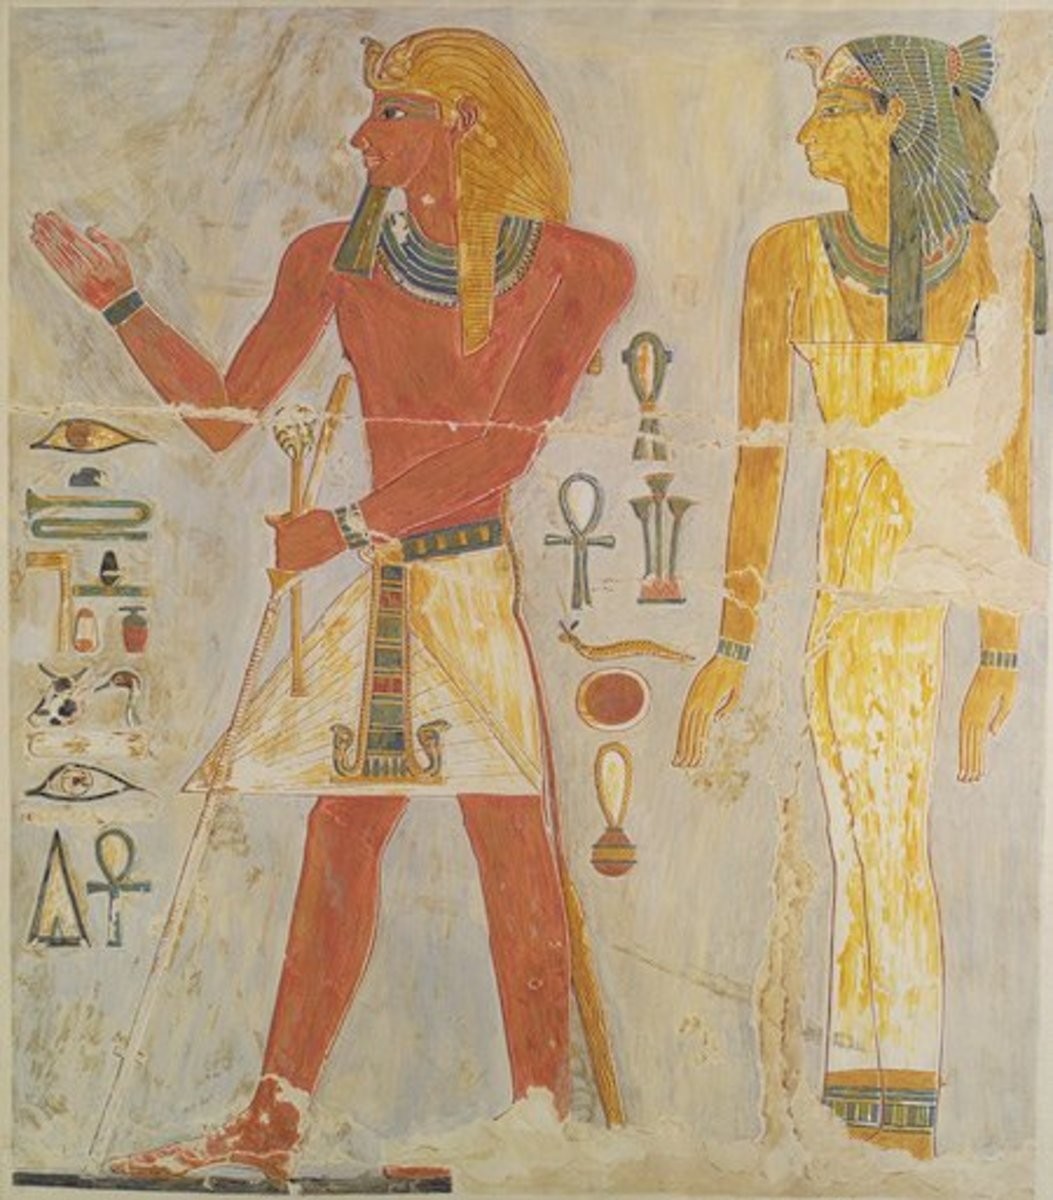 Pharaoh Thutmose I and his daughter Thermuthis, who according to Hewish Hstorian Josephus, found Moses amongst the reeds, close to the Nile